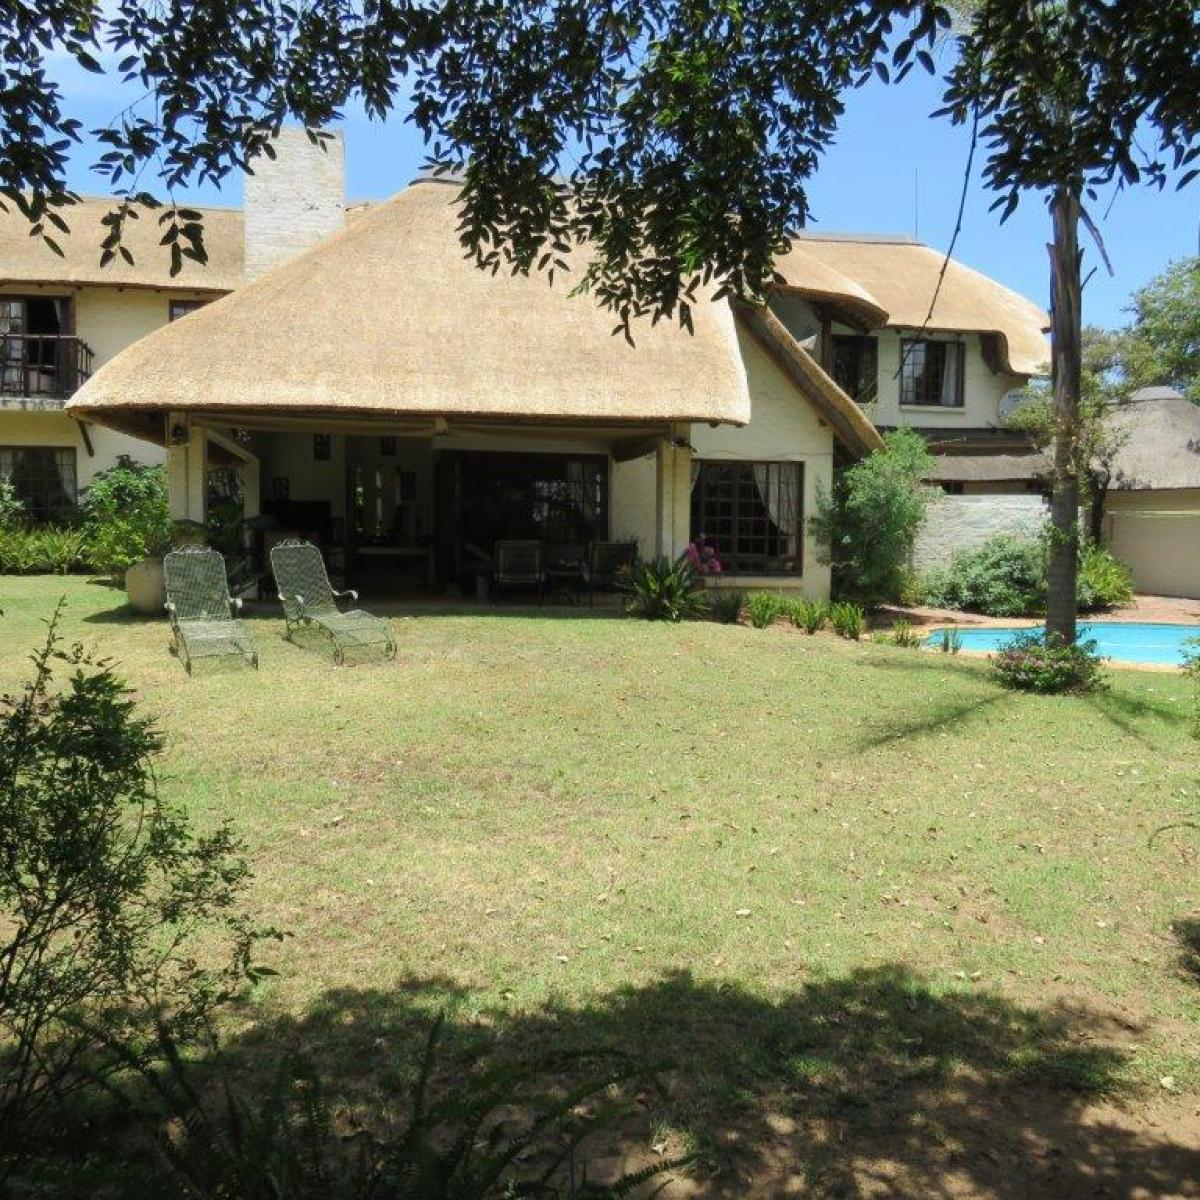 Picture of Home For Sale in Johannesburg, Gauteng, South Africa